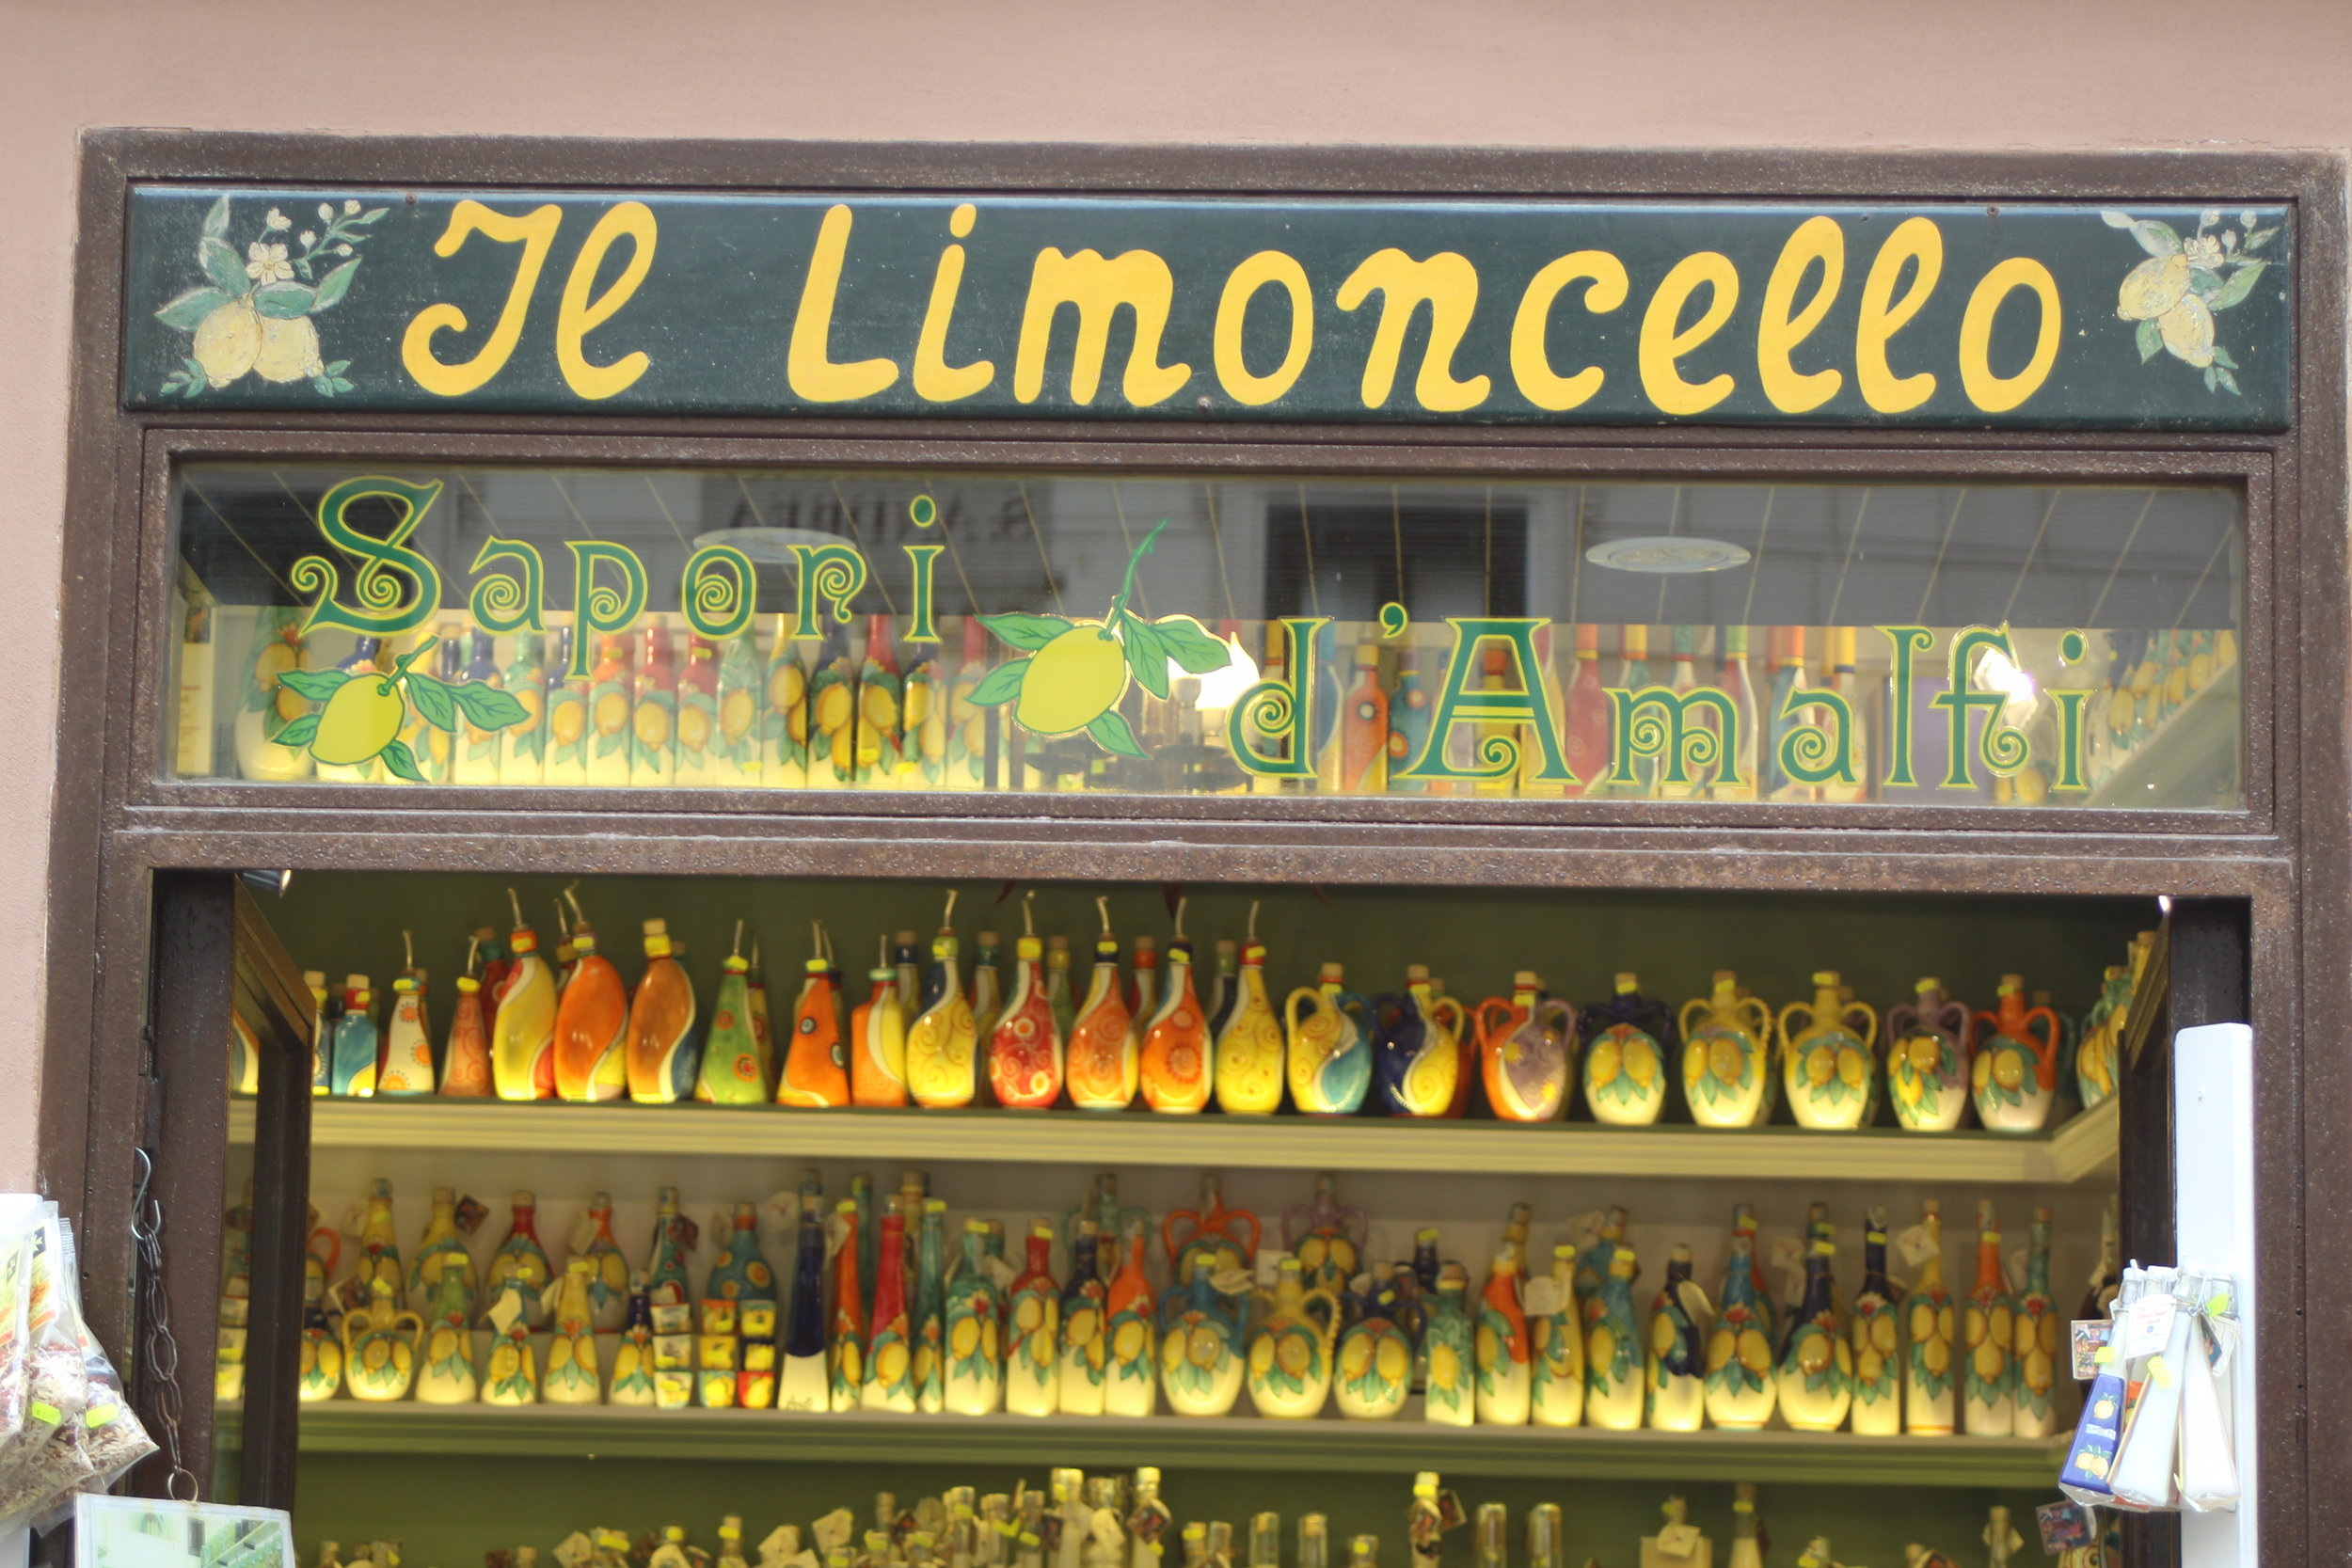 The best limoncello shop in Amalfi, Italy